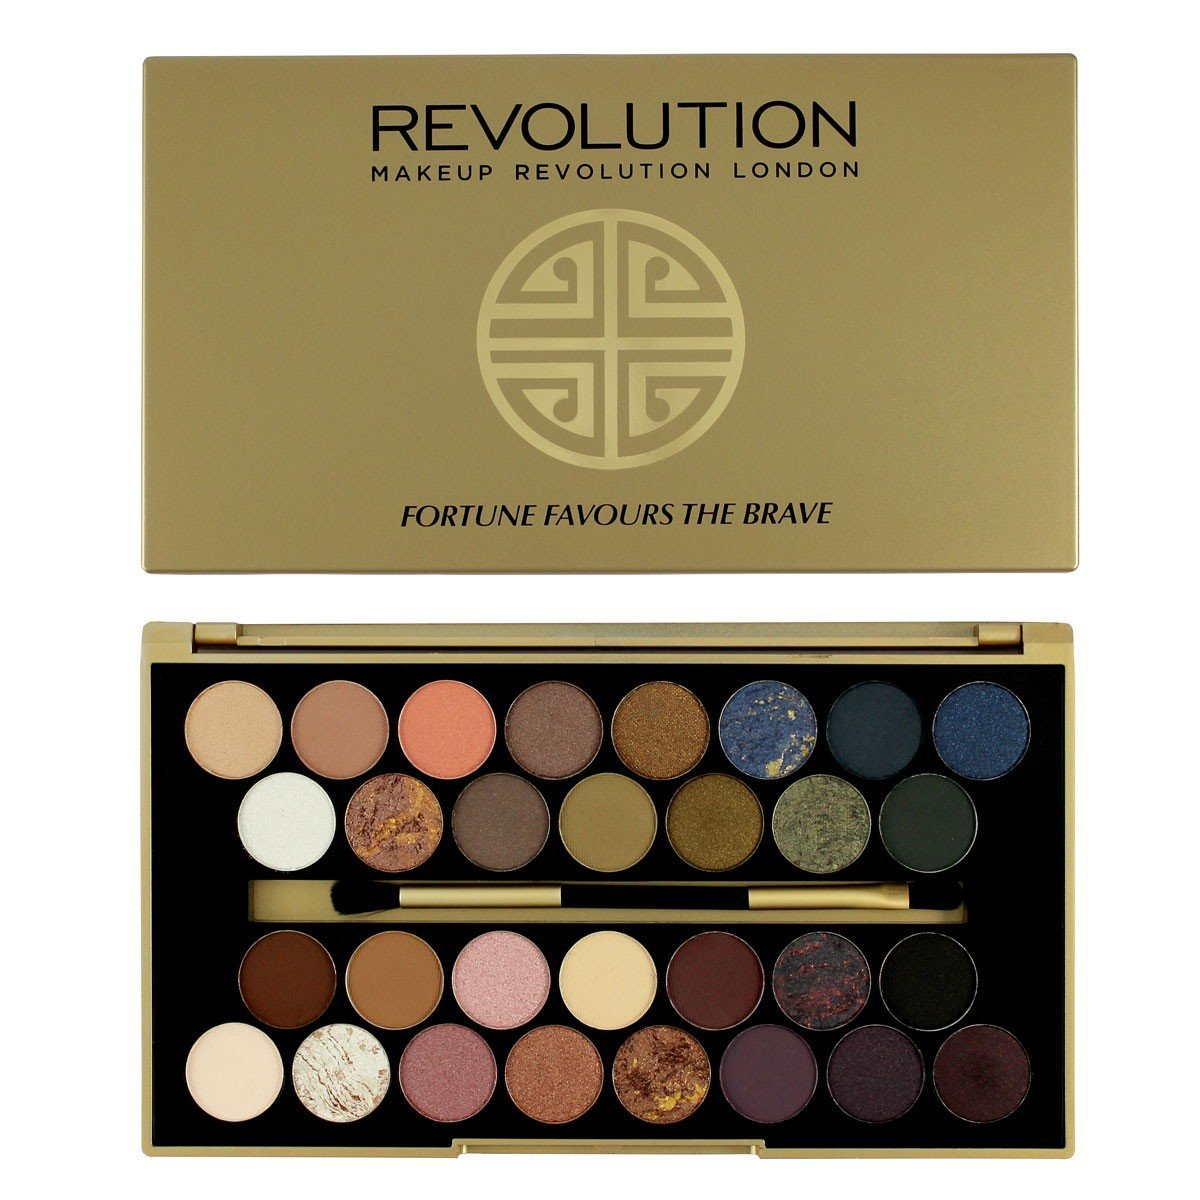 Makeup Revolution Palette Blush Bronze Highlight Make Up Fortune Favours The Brave By